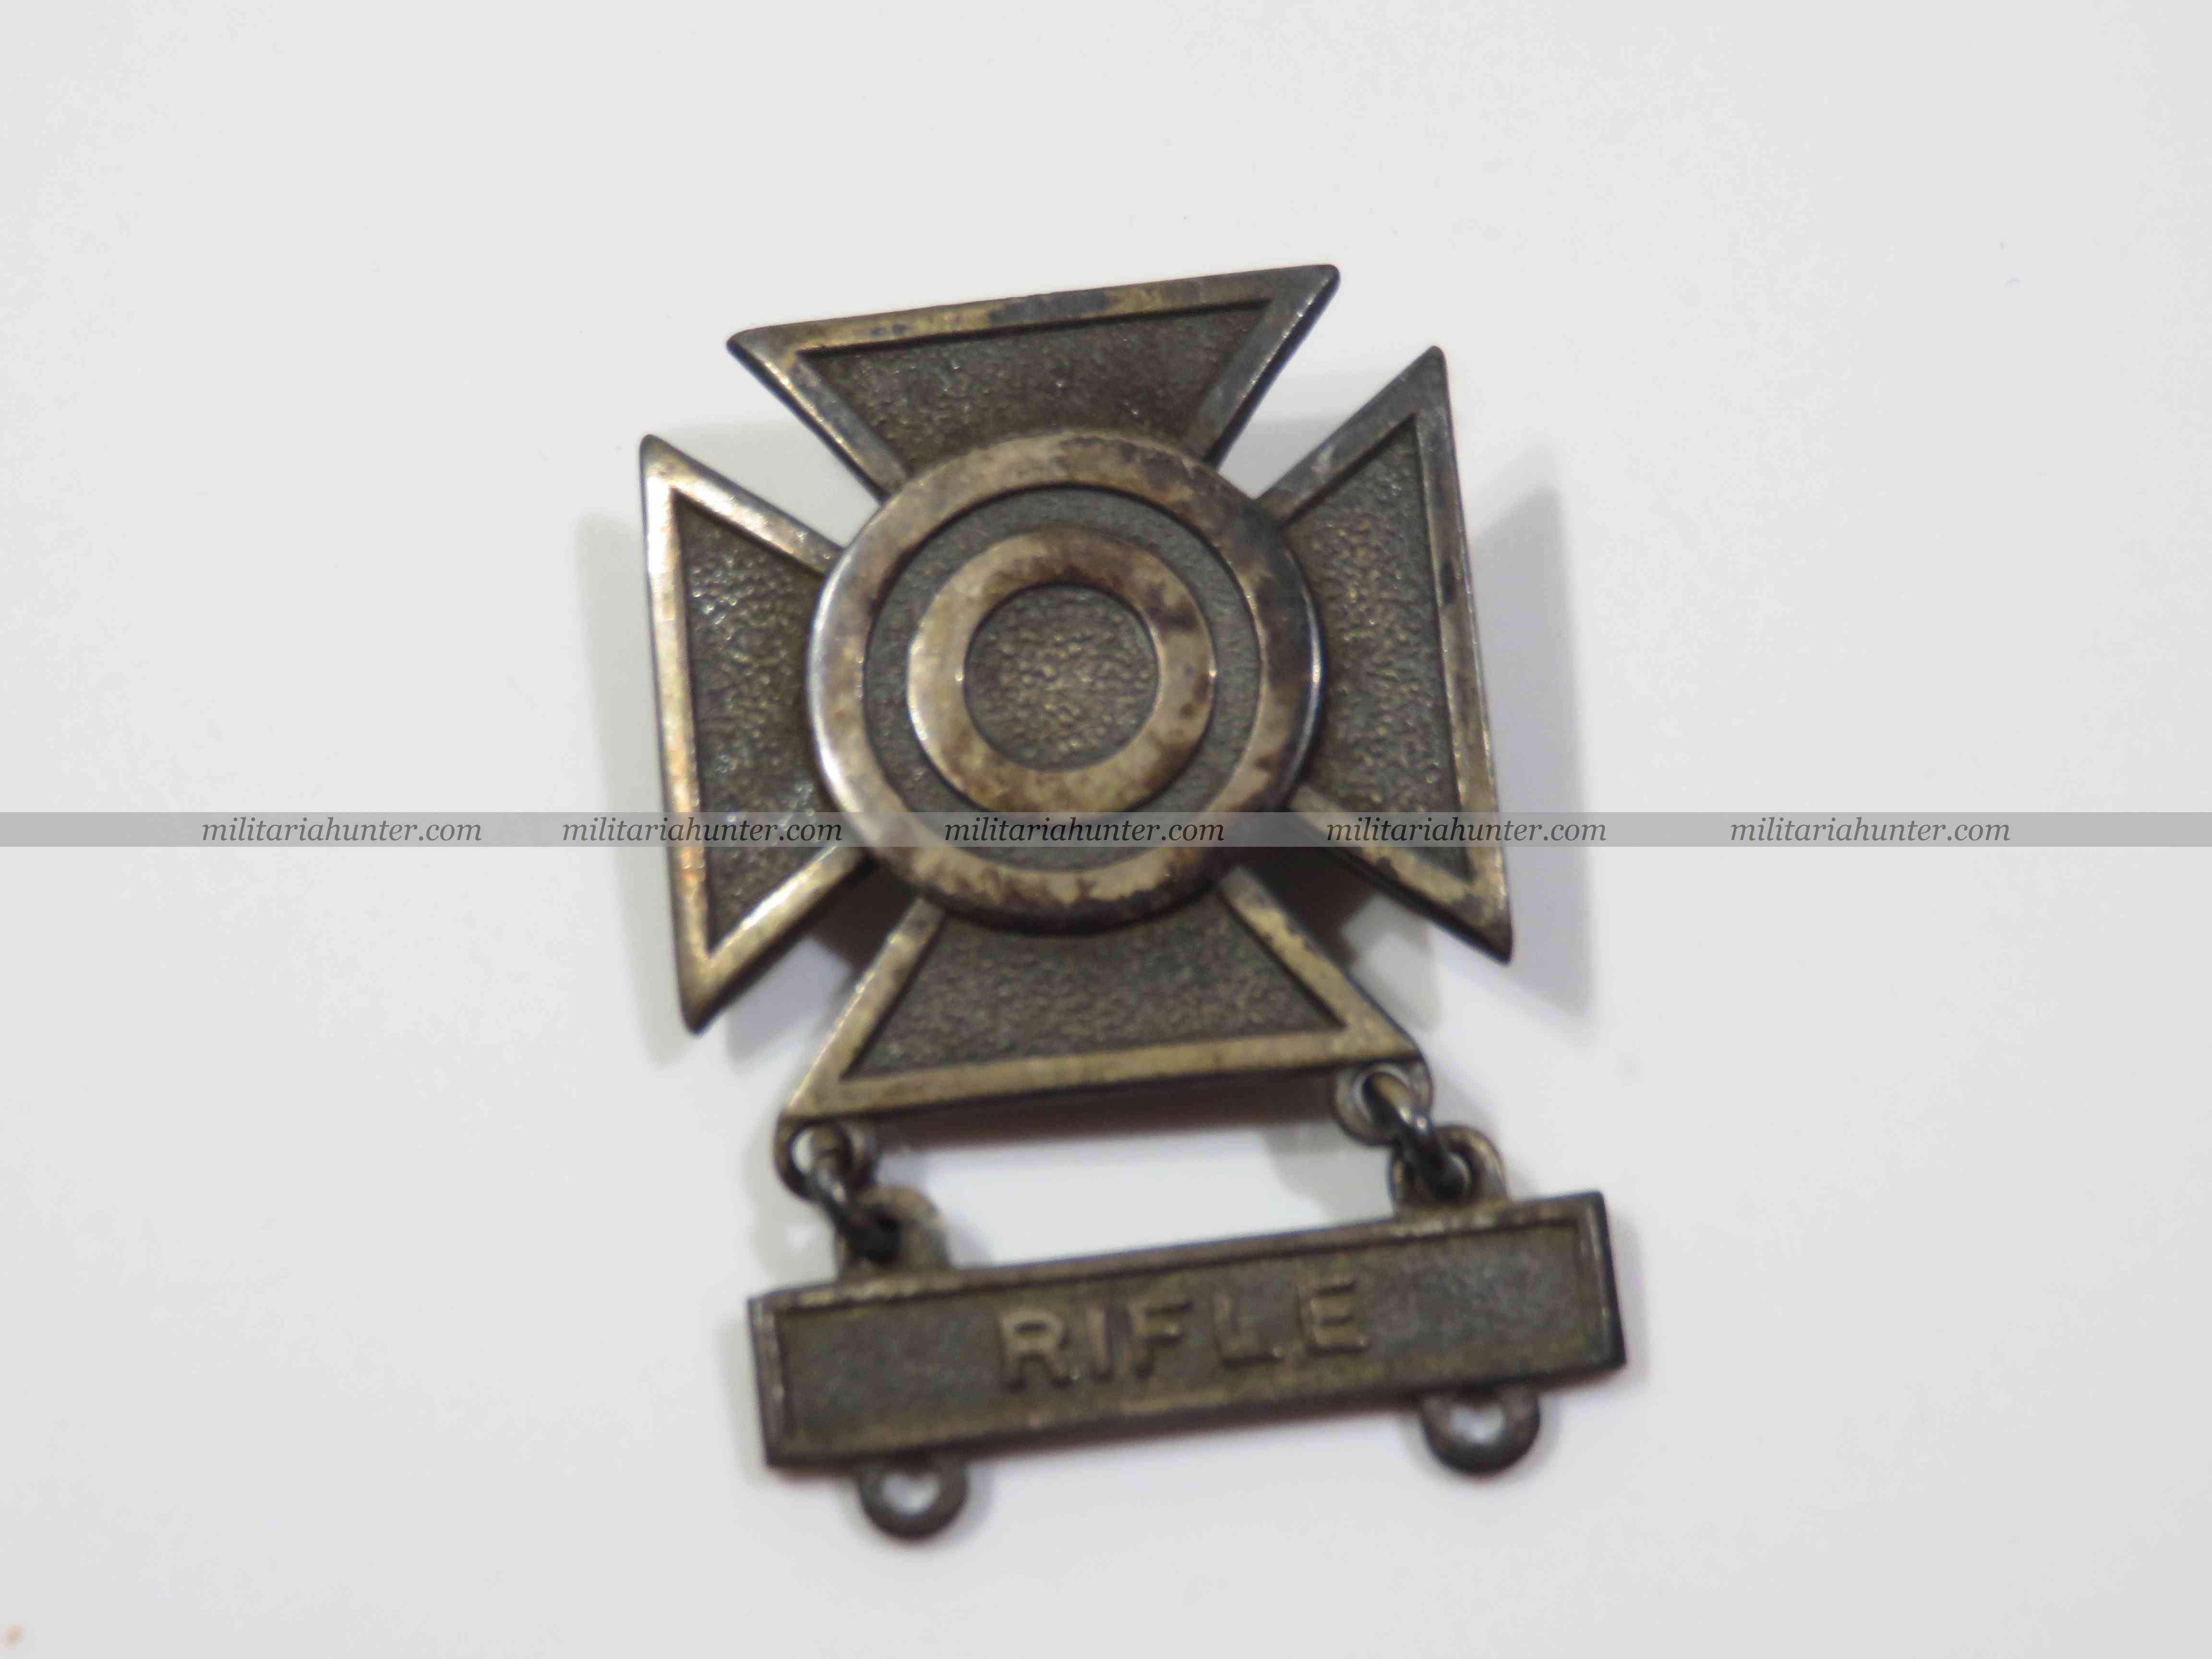 militaria : US ww2 badge de qualification M24 tireur d'élite au fusil